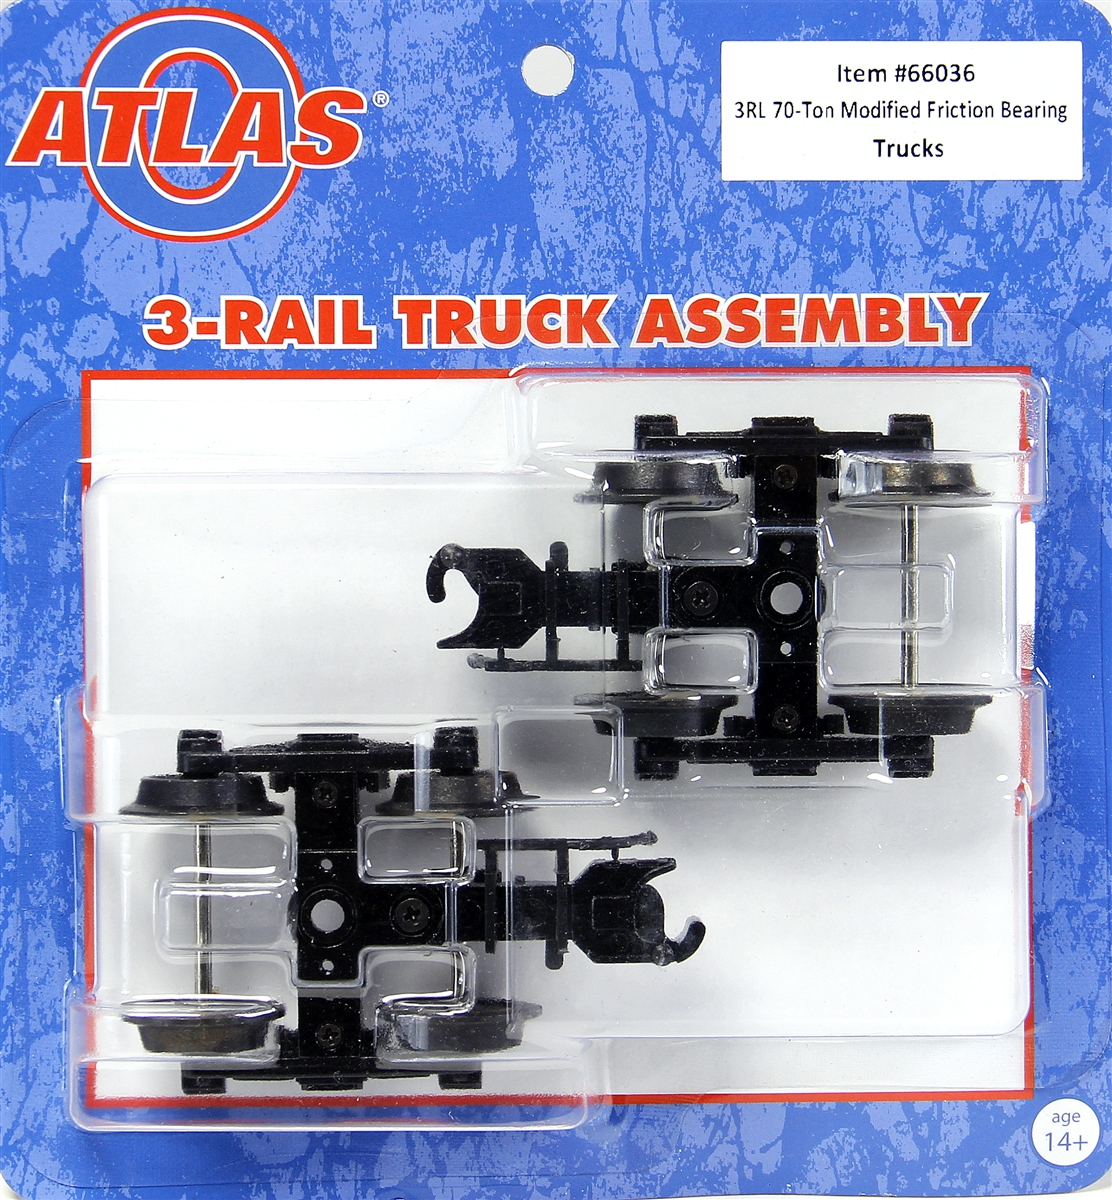 Atlas 66036 O 70-Ton Modified Friction Bearing Trucks 3-Rail 1 Pair This is Atlas 66036 O Scale 70-Ton Modified Friction Bearing Trucks w/Knuckle Coupler 3-Rail Ready to 1 Pair . 3-Rail Trucks with Scale Sideframes. Features: Hidden uncoupler tab*Scale thickness side frames*Scale distance between the side frame*Direct replacement for older Atlas 3-Rail trucks*Note: Separate sale trucks include a standard length couplerCondition: Factory New (C-9All original; unused; factory rubs and evidence of handling, shipping and factory test run.Standards for all toy train related accessory items apply to the visual appearance of the item and do not consider the operating functionality of the equipment.Condition and Grading Standards are subjective, at best, and are intended to act as a guide. )Operational Status: FunctionalThis item is brand new from the factory.Original Box: Yes (P-9May have store stamps and price tags. Has inner liners.)Manufacturer: AtlasModel Number: 66036MSRP: $24.95Scale/Era: O ModernModel Type: Trucks/CouplersAvailability: Ships in 3 to 5 Business Days.The Trainz SKU for this item is P12092728. Track: 12092728 - FS - 001 - TrainzAuctionGroup00UNK - TDIDUNK